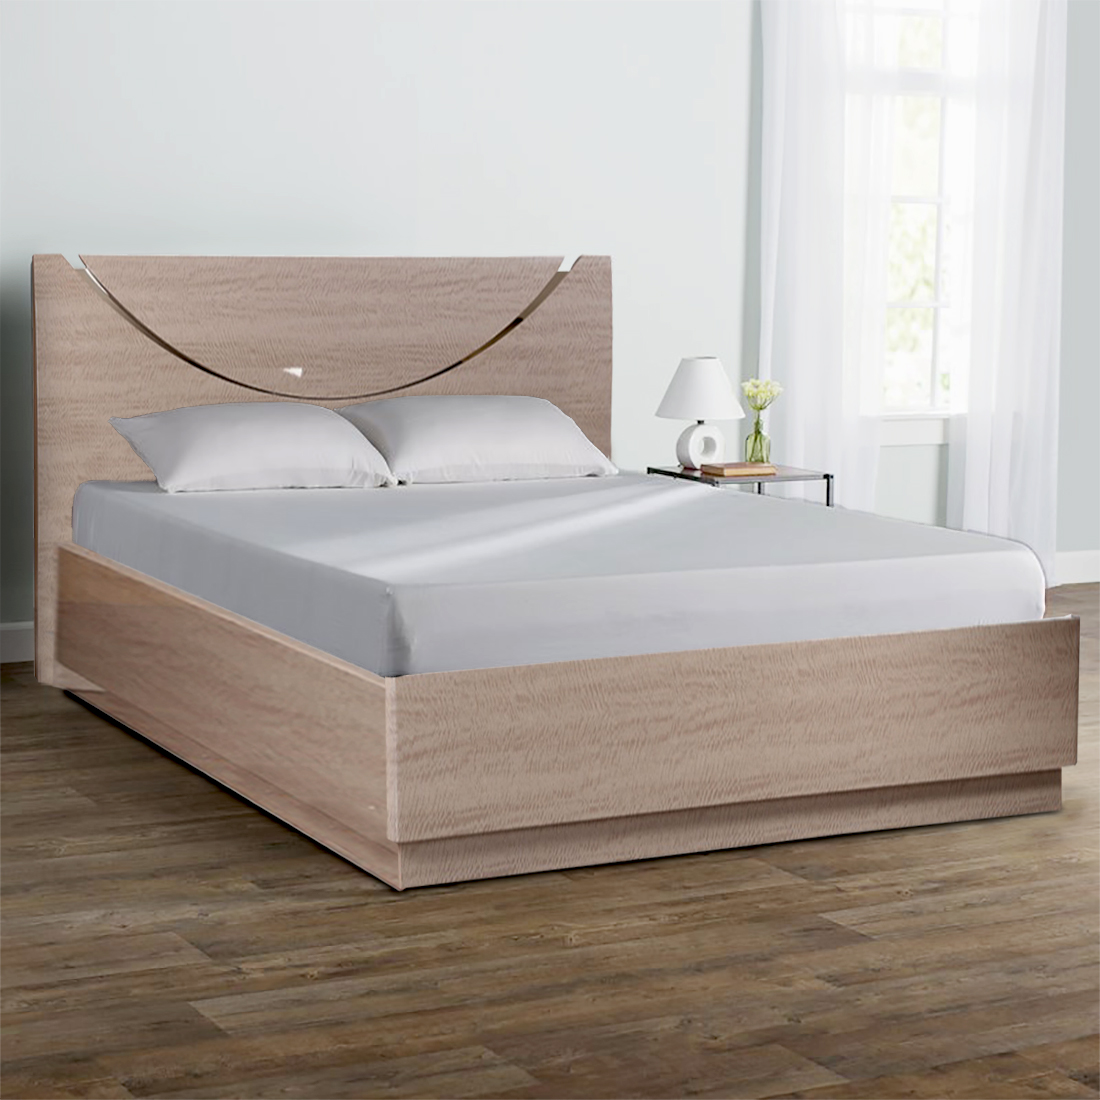 Alexandria Engineered Wood Hydraulic Storage King Size Bed in Light Marble Colour by HomeTown